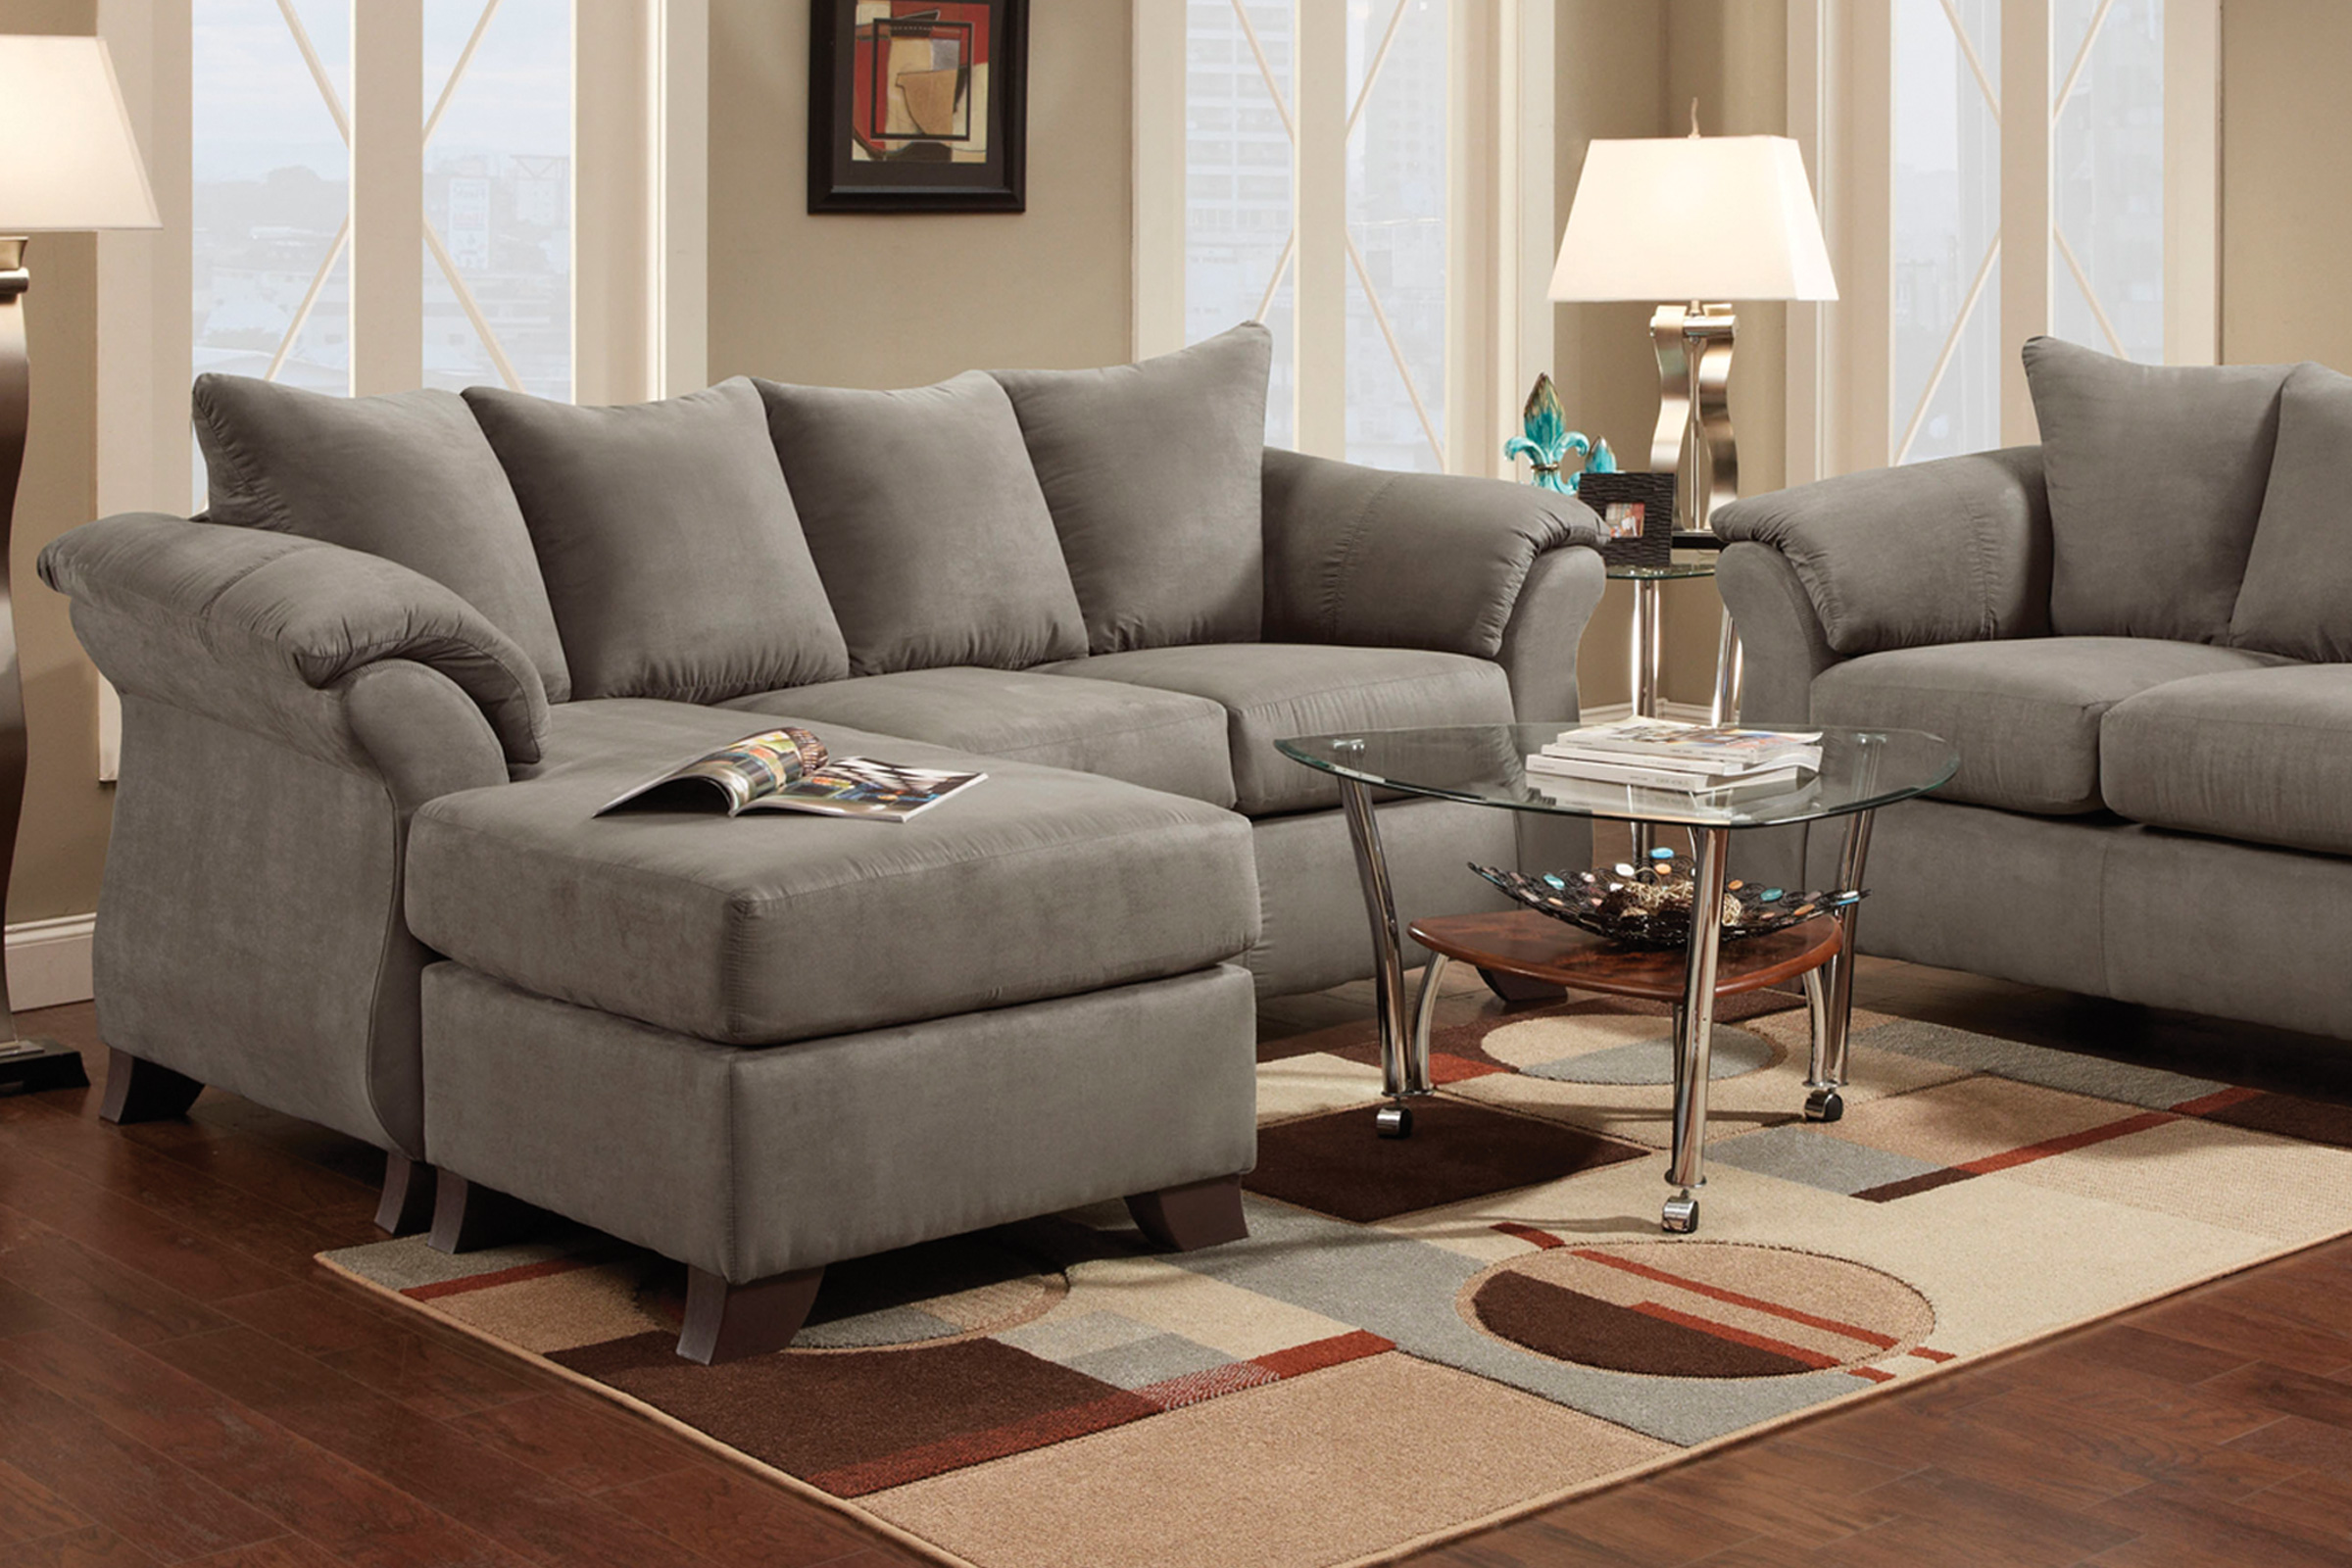 Upton Microfiber Sofa With Floating Ottoman At Gardner White